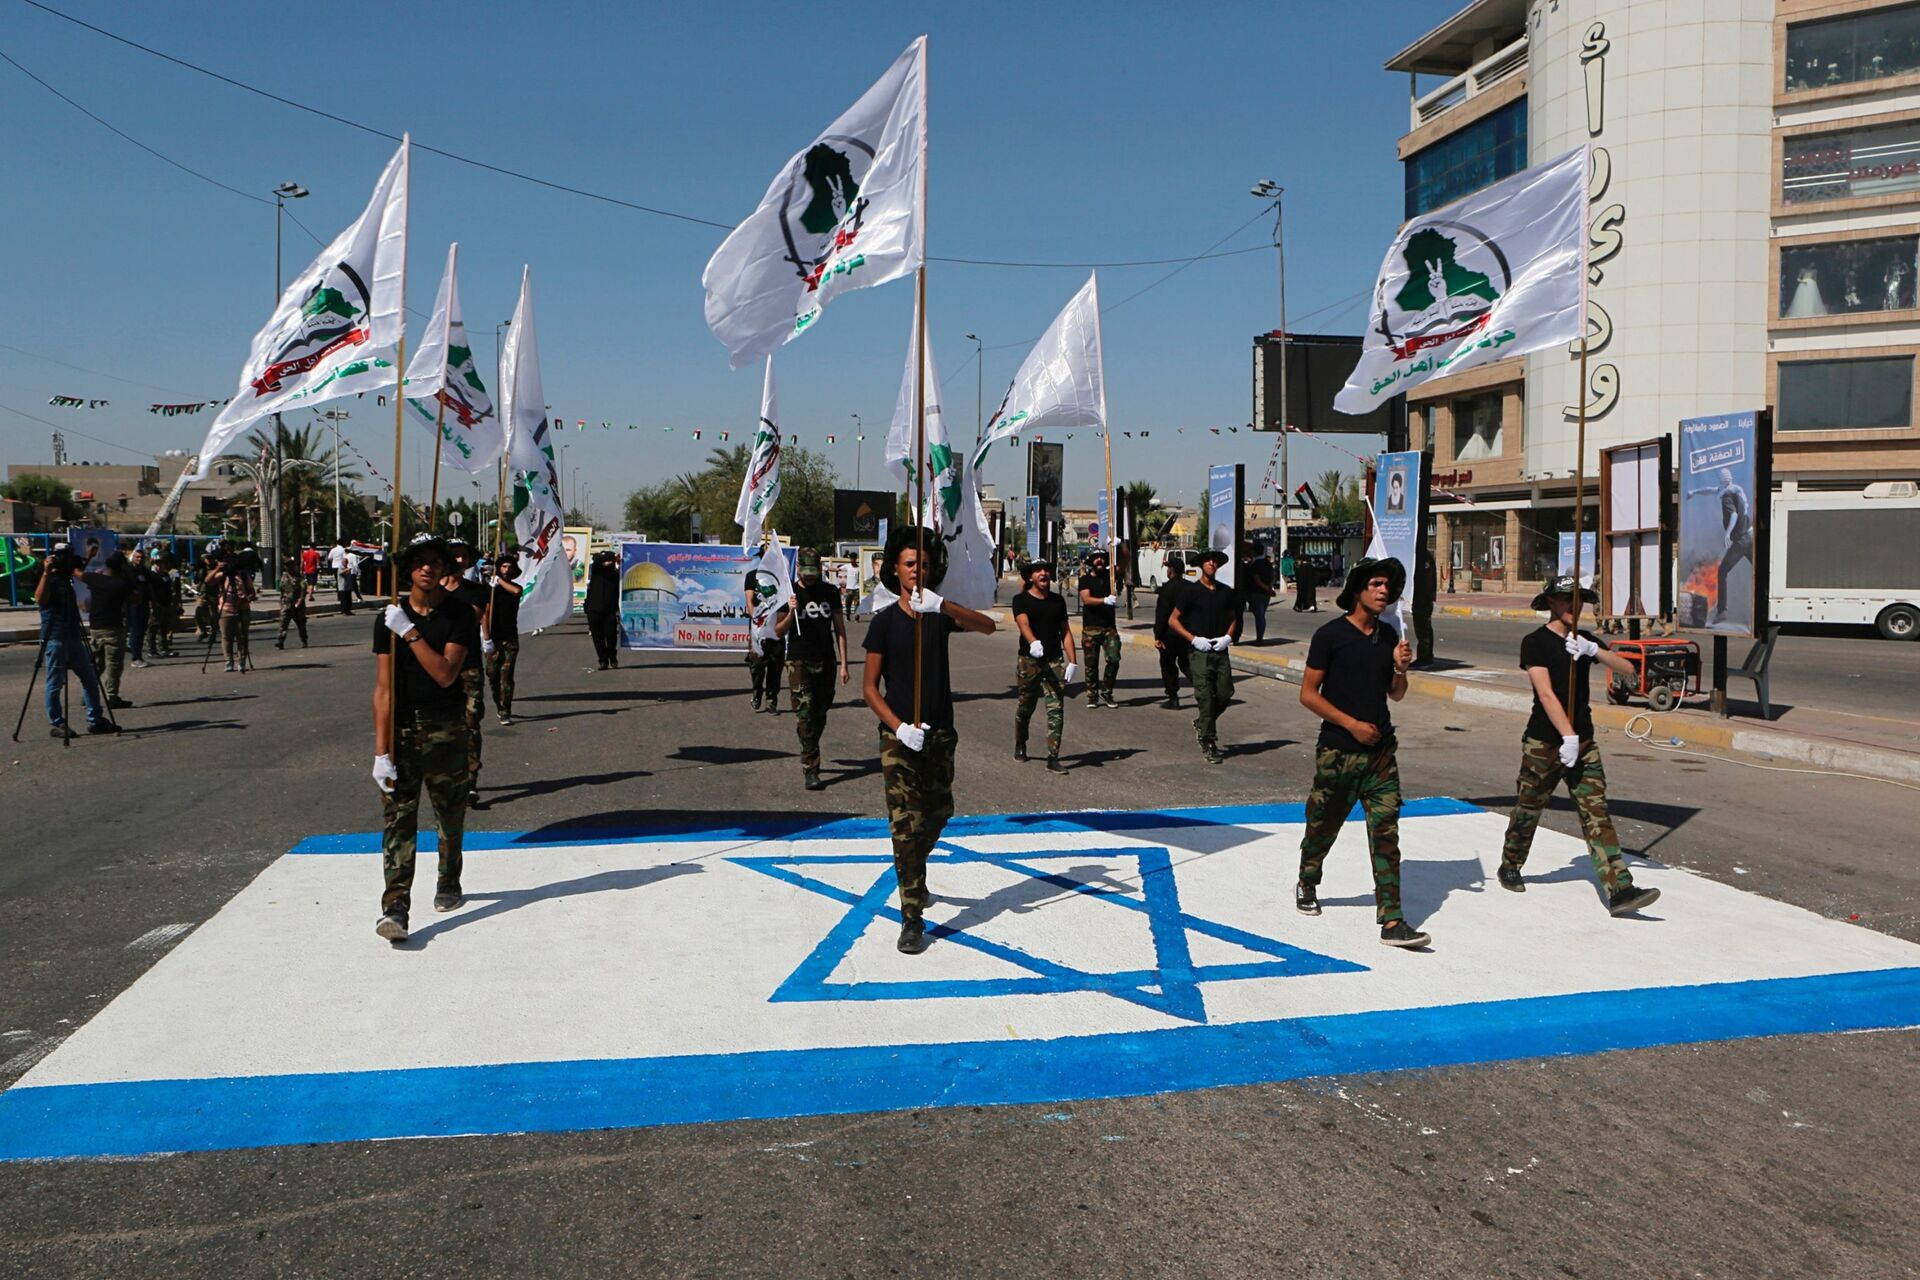 Iraq's Iranian-supported Popular Mobilization Forces militiamen marching over an Israeli flag drawn on the street in Baghdad, May 2019. - Sputnik International, 1920, 07.09.2021